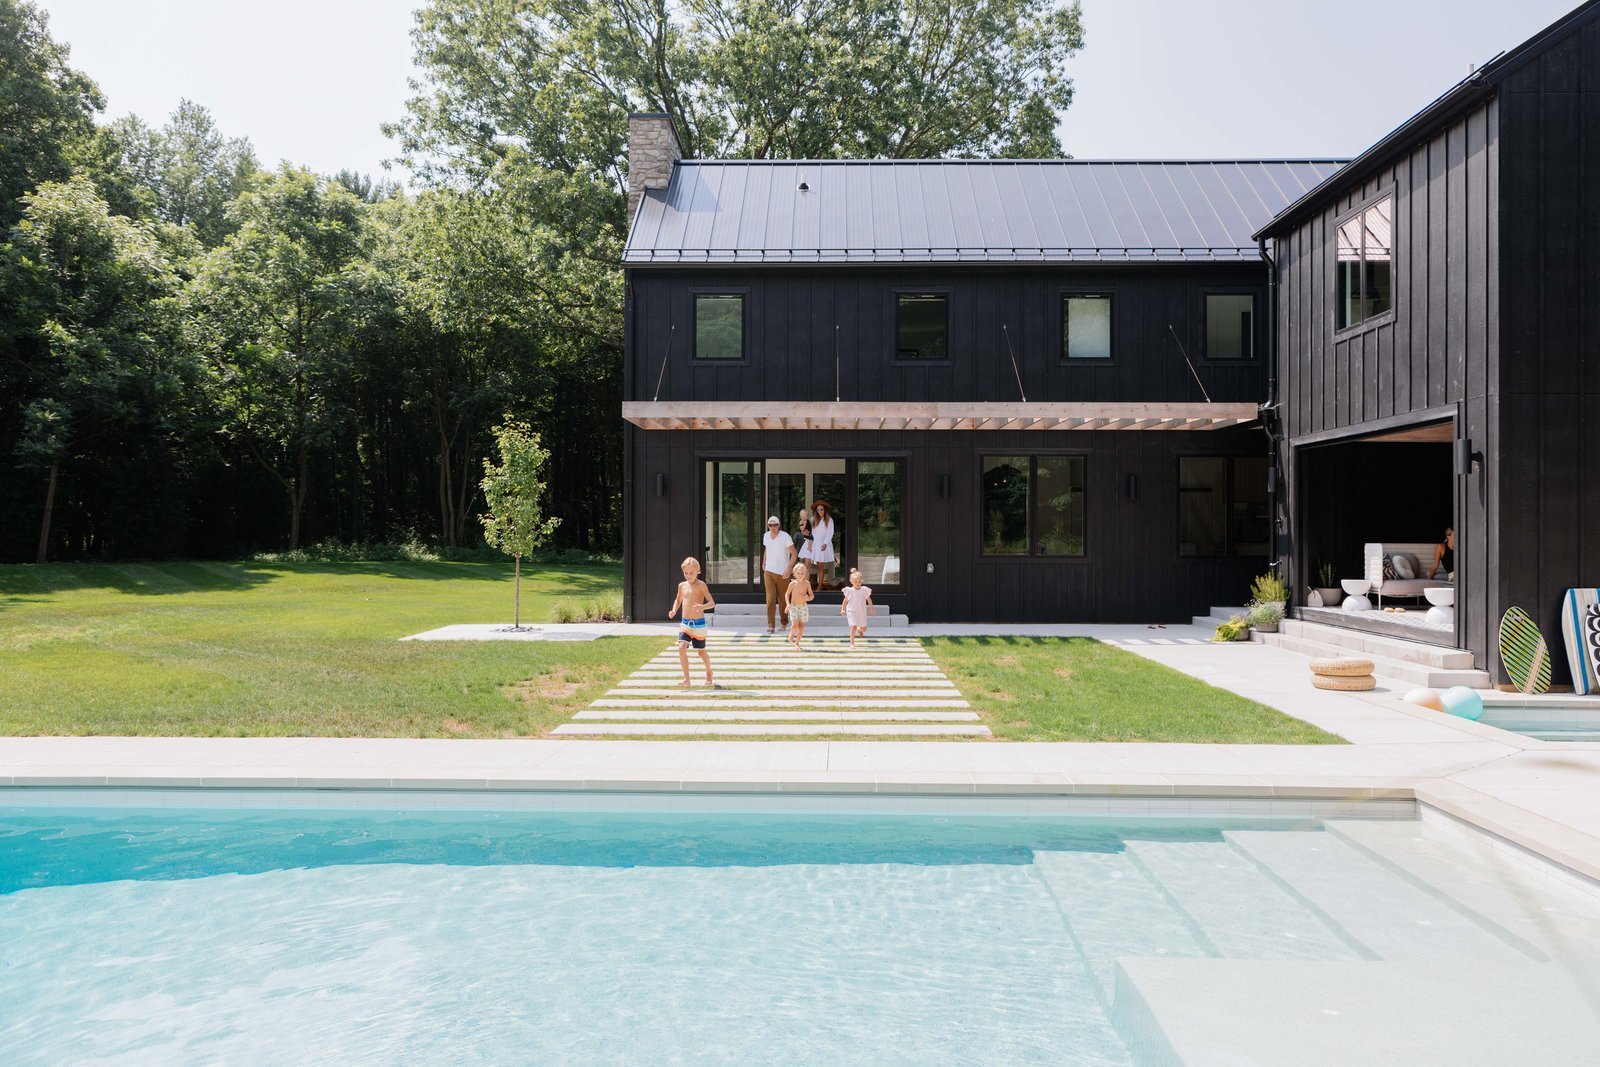 Photo 1 of 10 in Watch How This Danish-Style Farmhouse Unites a Family With Nature